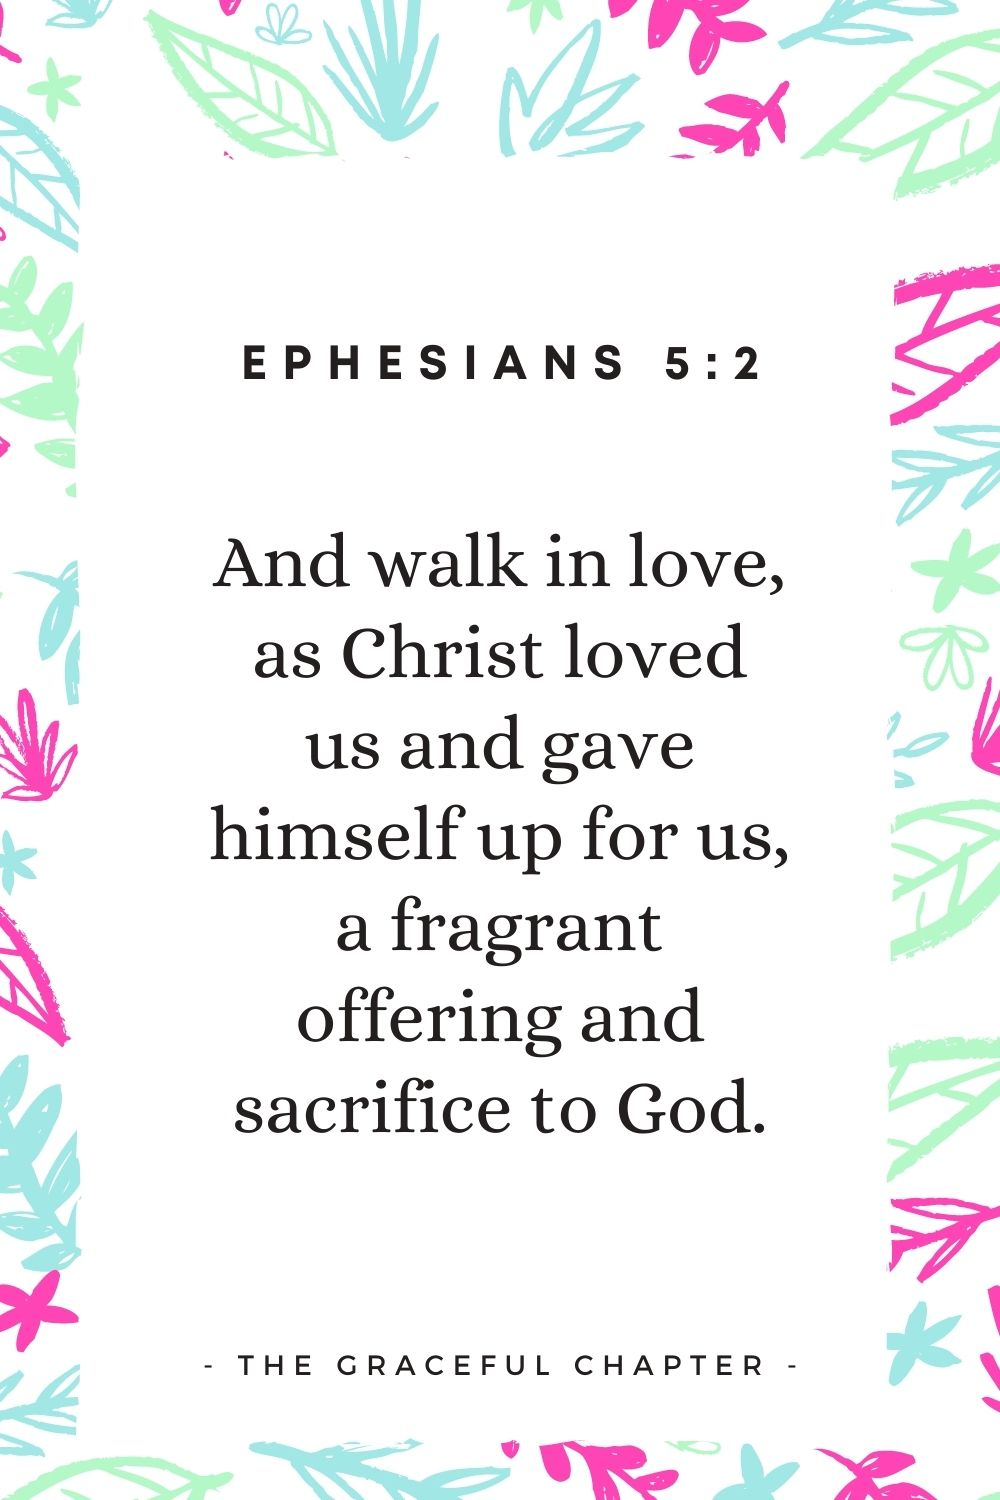 And walk in love, as Christ loved us and gave himself up for us, a fragrant offering and sacrifice to God. Ephesians 5:2